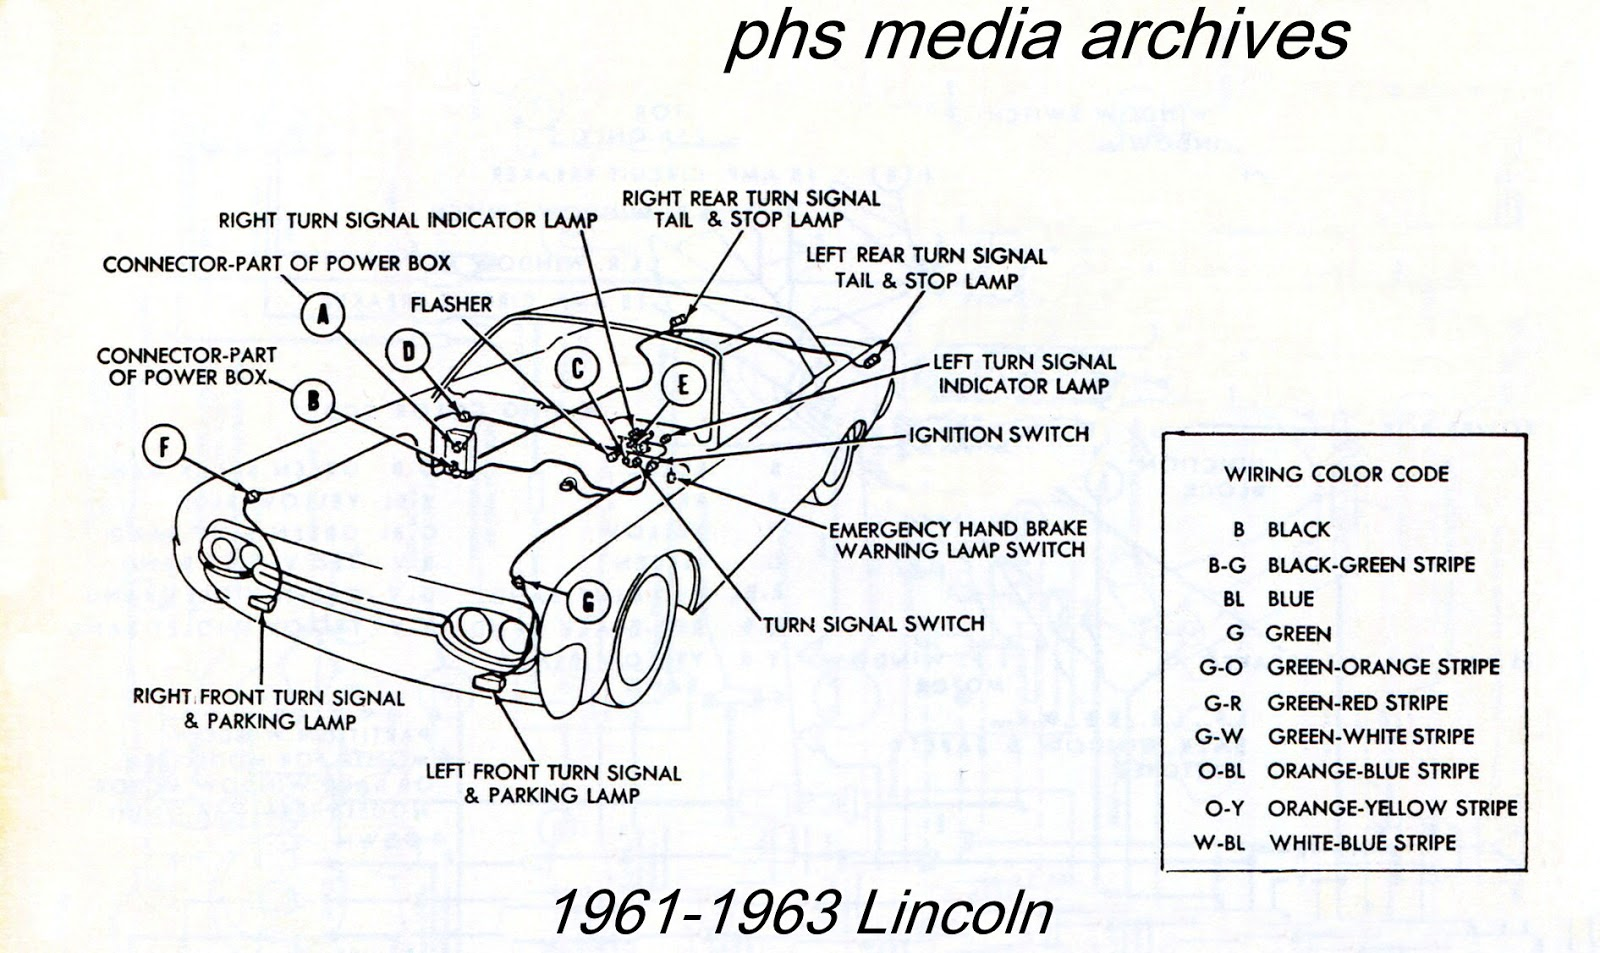 Tech Series 1960 1964 Lincoln Wiring Diagrams Phscollectorcarworld Diagram As Well Window Air Conditioner On Stop Start We Do Not Know Why The Company Chose To Label 1963 And Then Supply A Separate Image For 1961 Later Cars